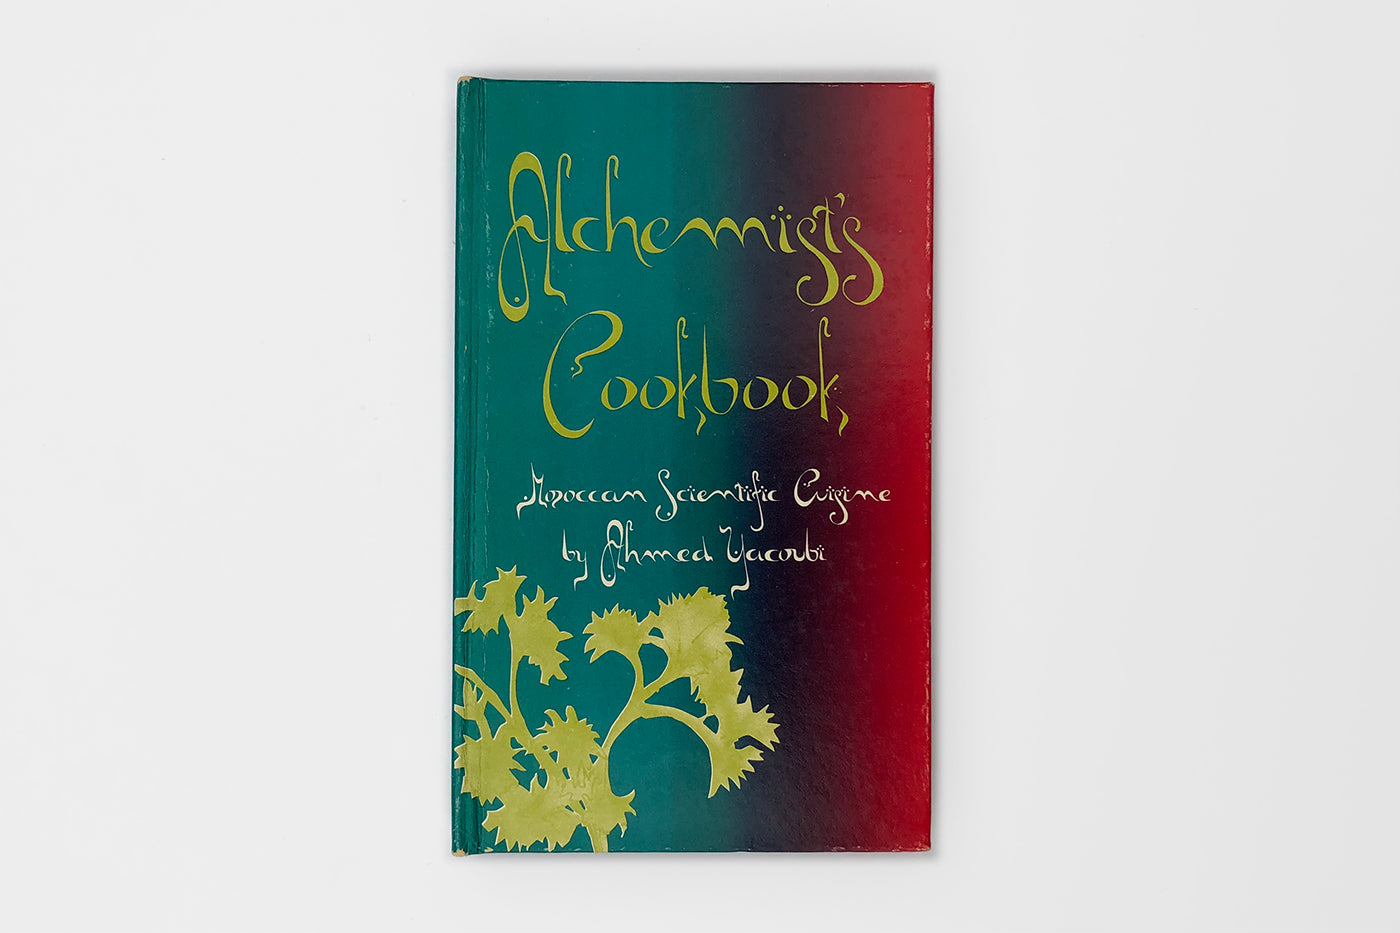 Alchemist's Cookbook, Moroccan Scientific Cuisine by Ahmed Yacoubi